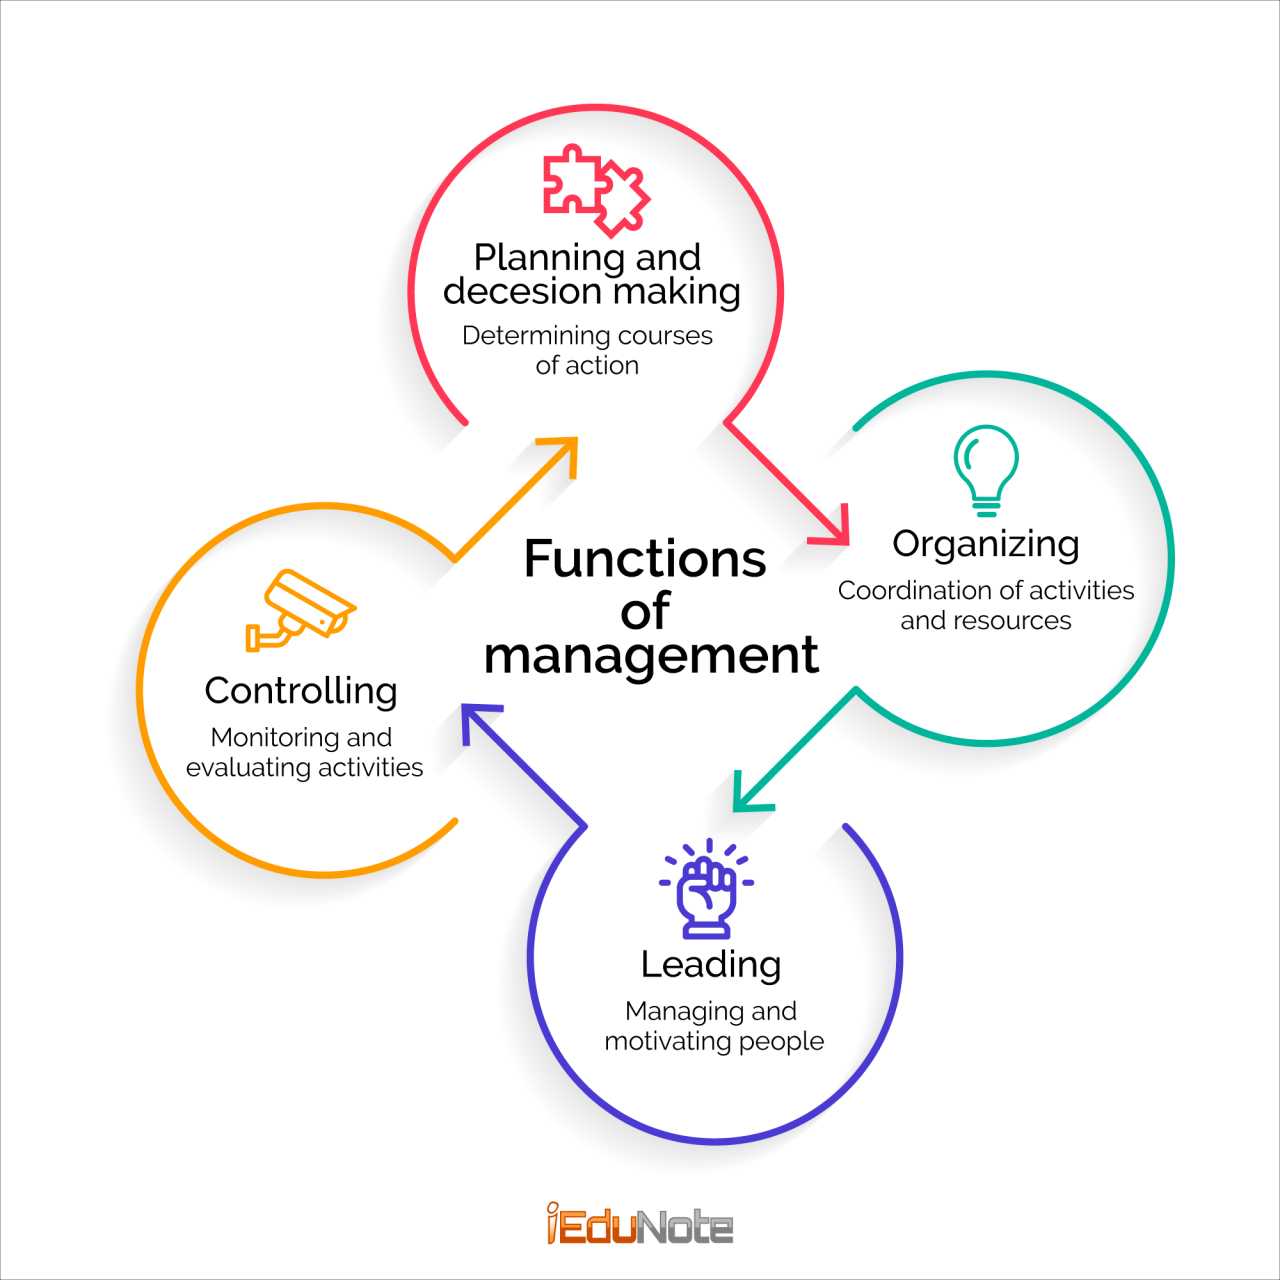 4 functions or steps of management process